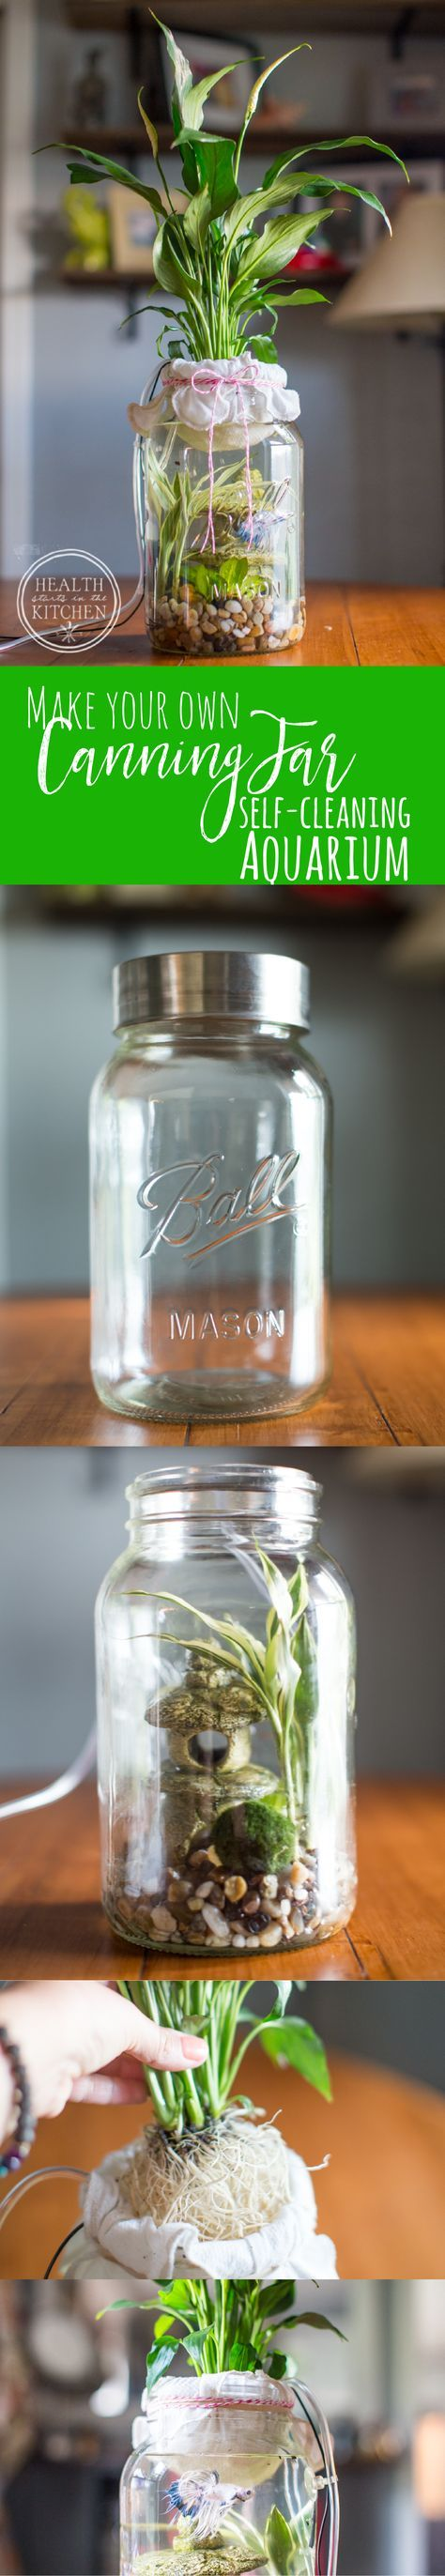 Omg this is adorable make your own diy canning jar self cleaning